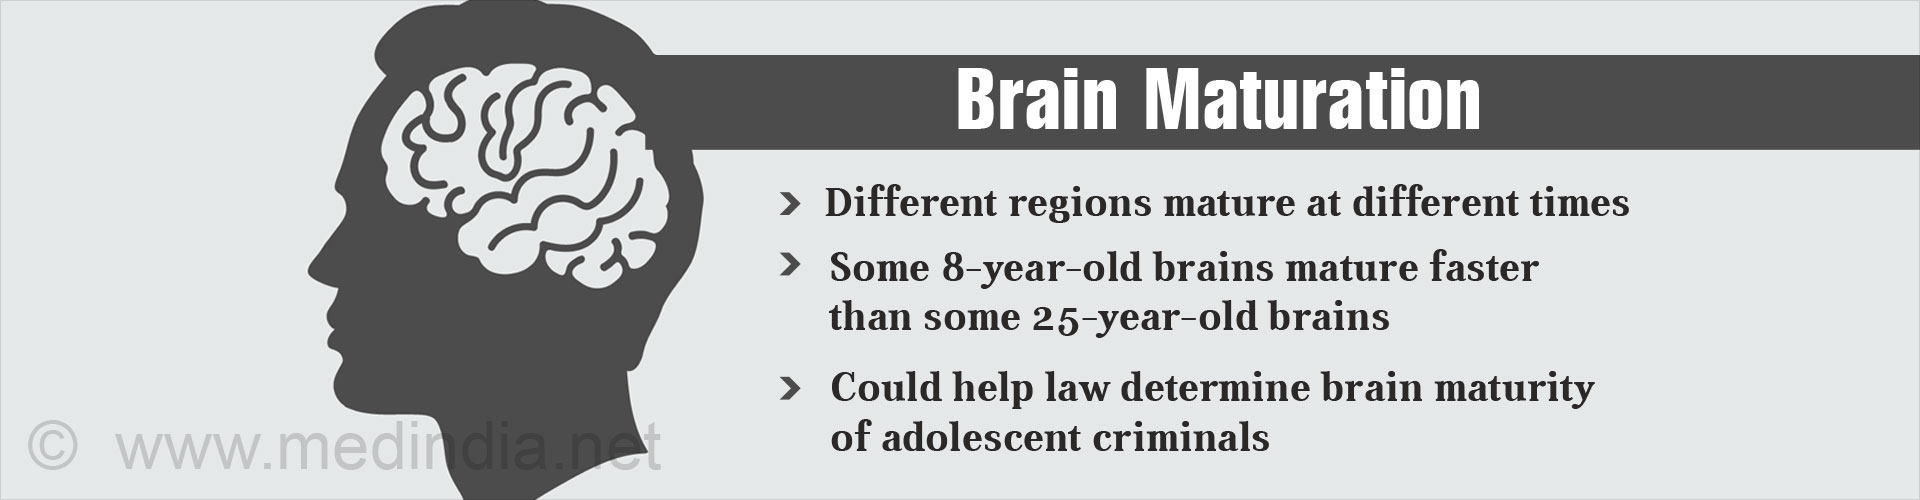 Legal at 18 But Not Matured enough to be an Adult – Recent Findings on Brain Maturation